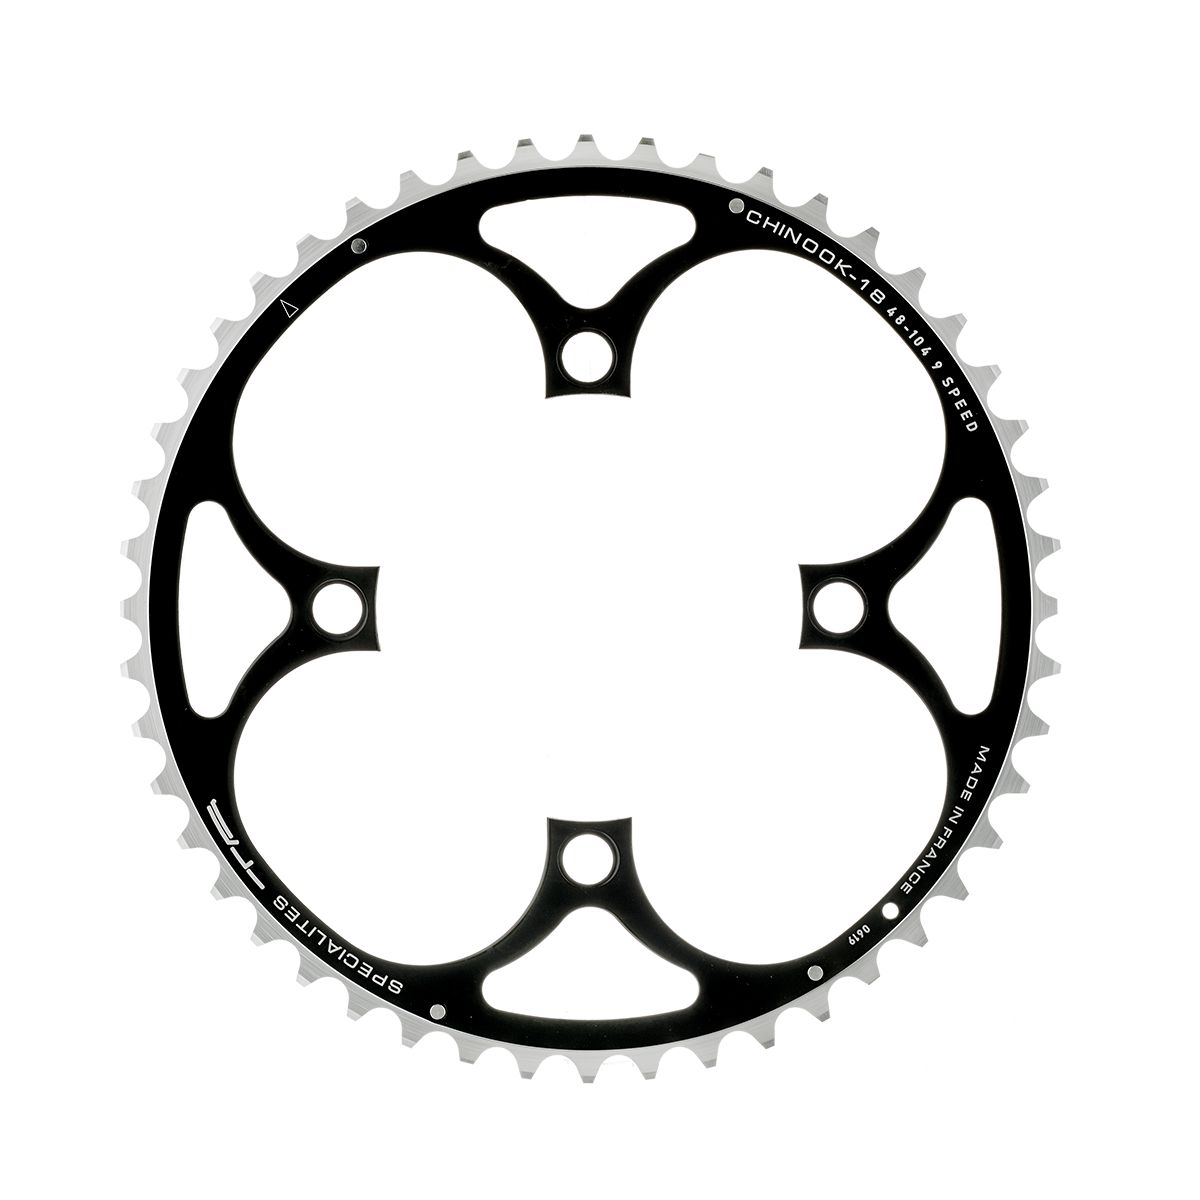 TA Chinook 9-speed 48-tooth chainring | Klinger